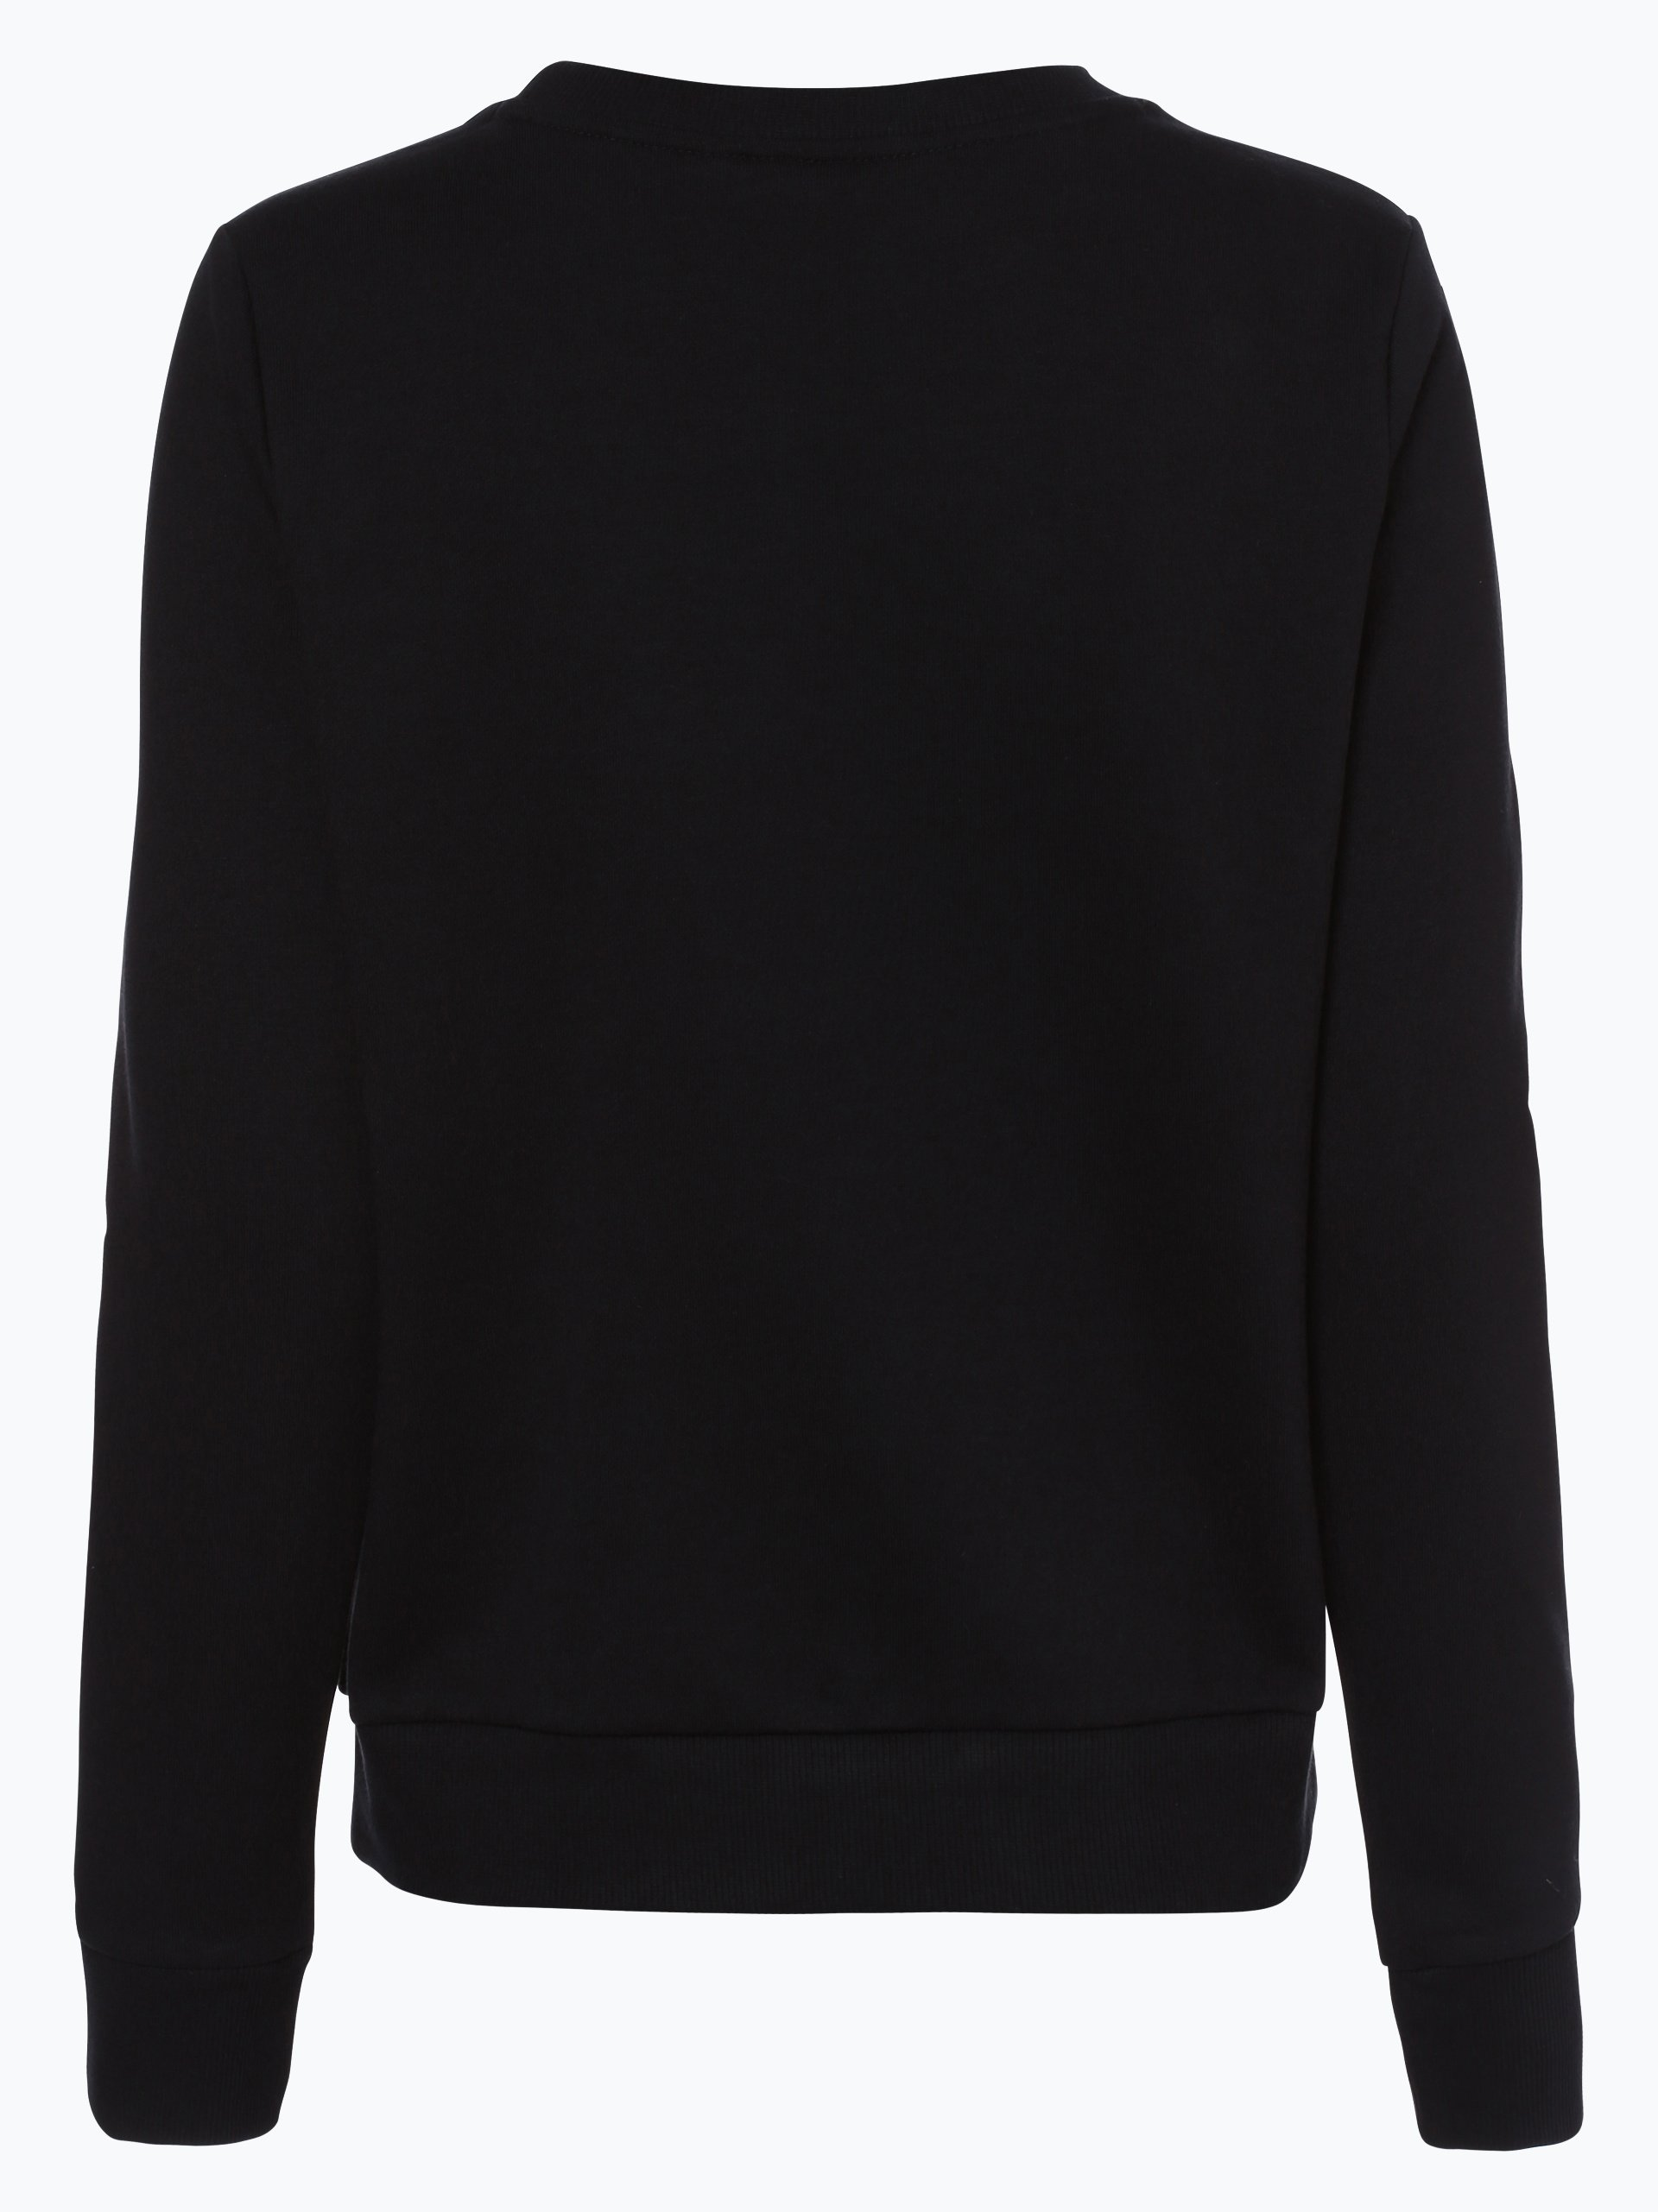 adidas originals damen sweatshirt schwarz uni online. Black Bedroom Furniture Sets. Home Design Ideas